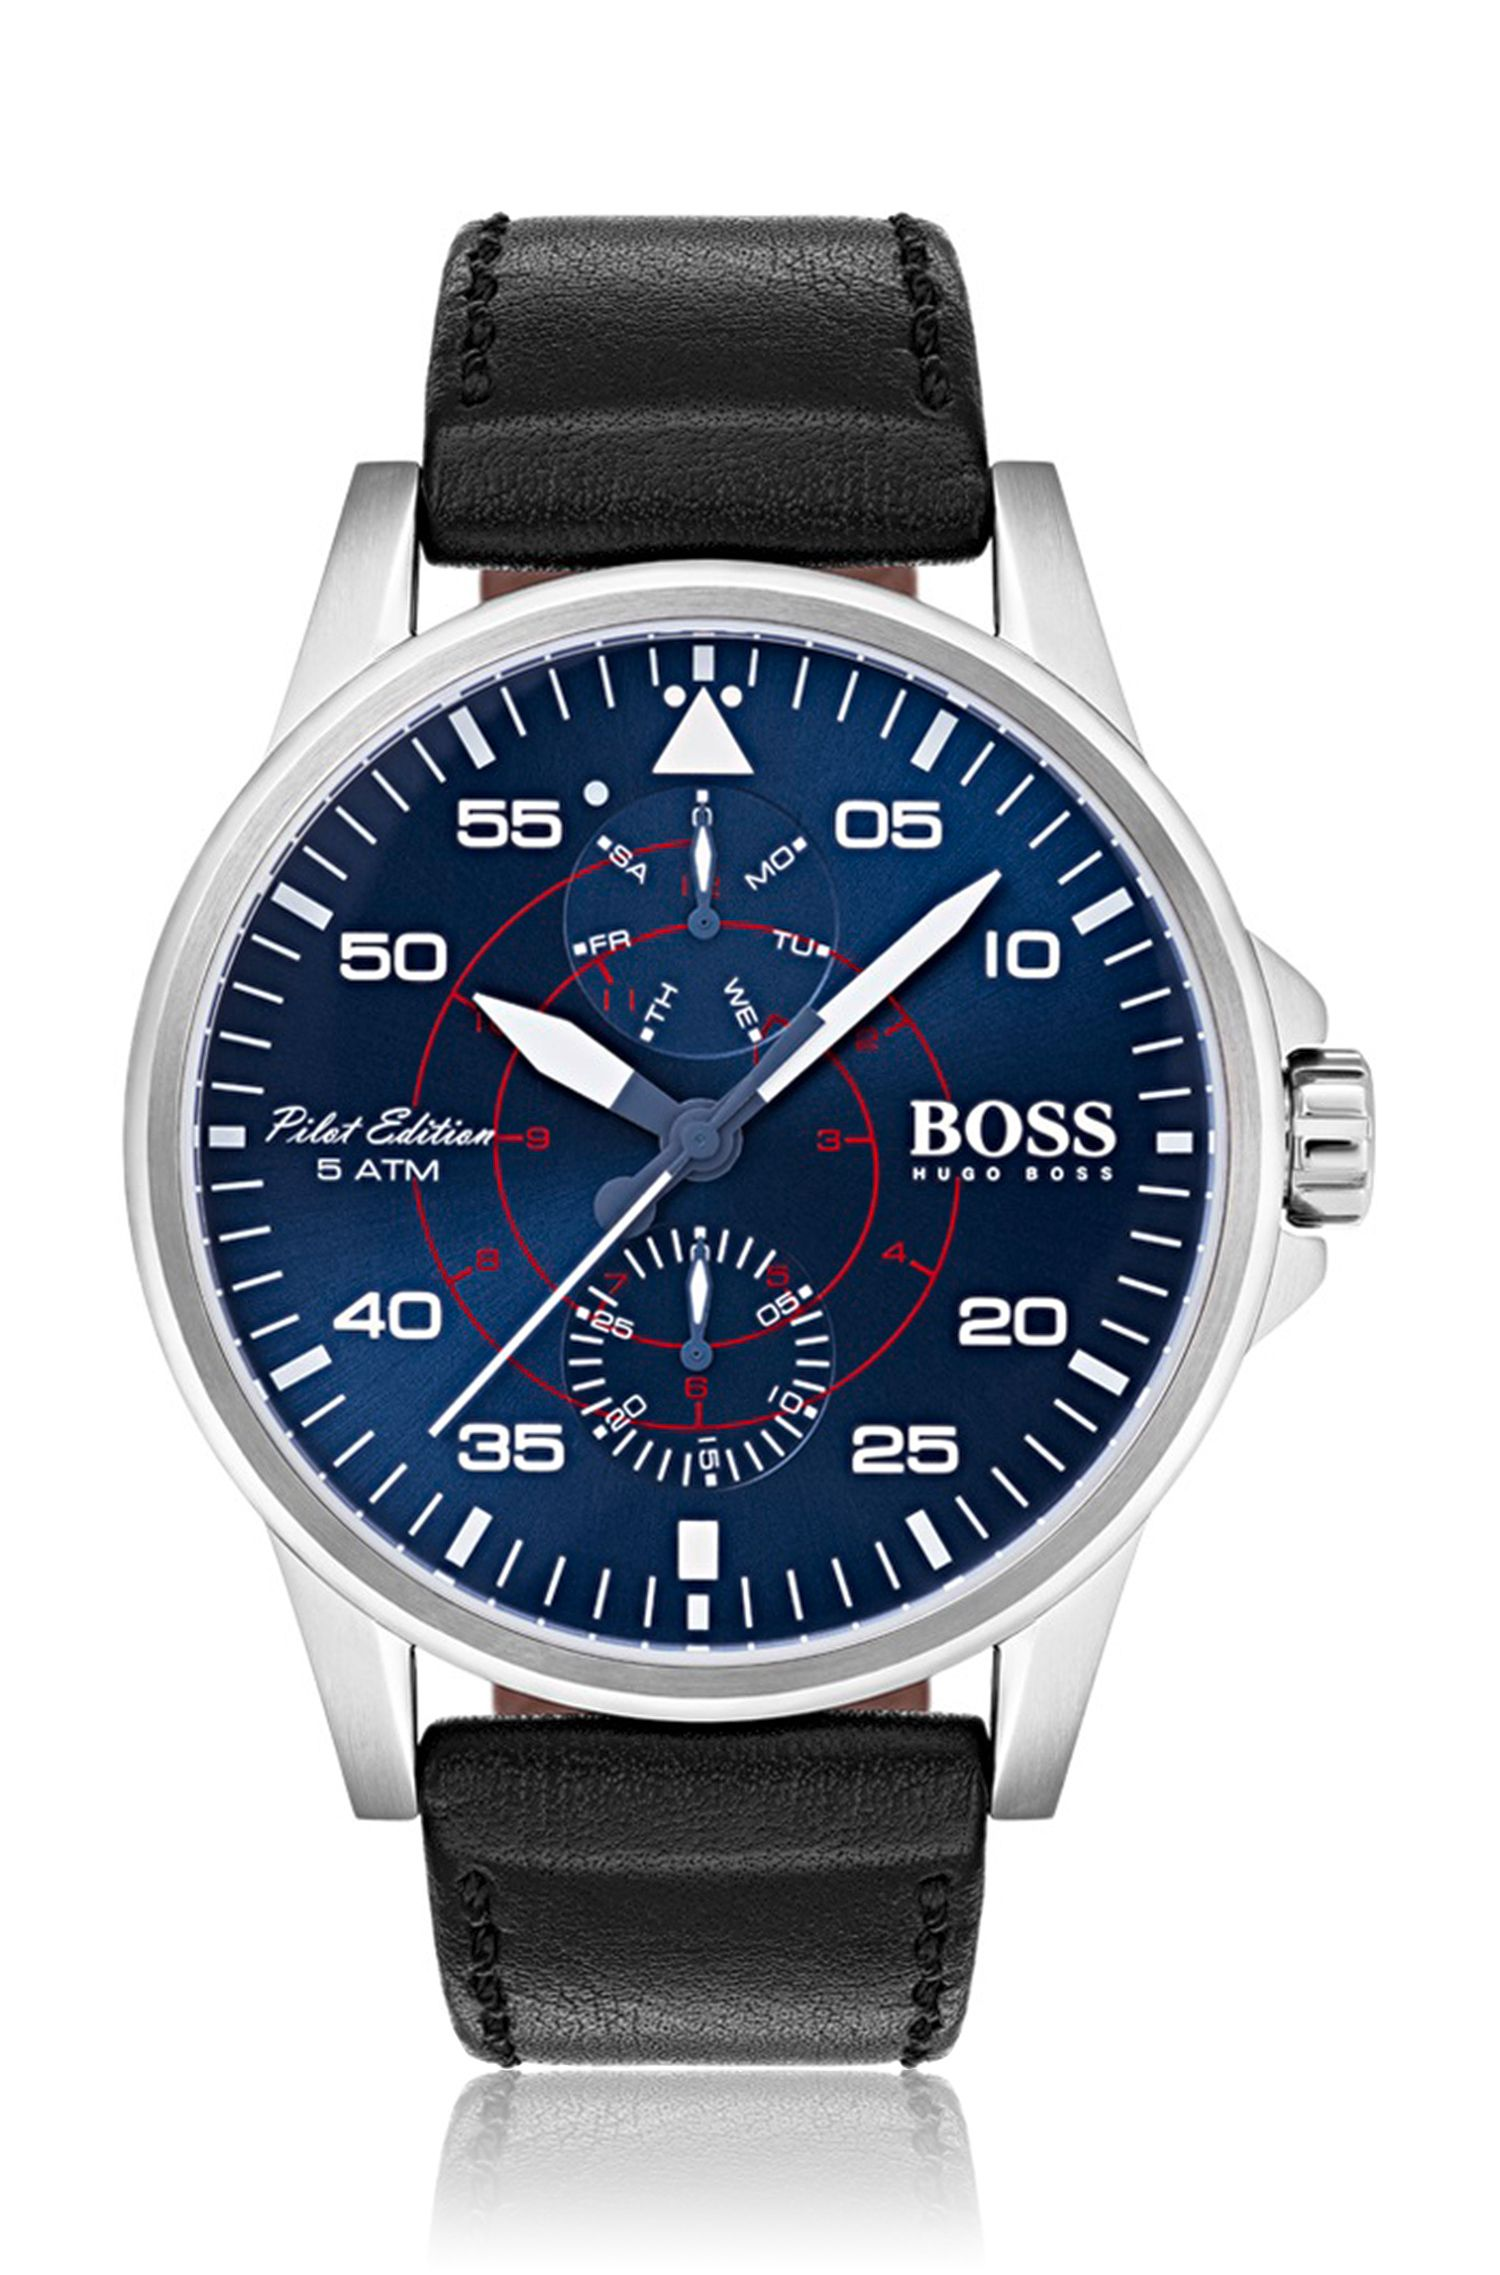 Pilot edition watch with blue dial and vachetta leather strap